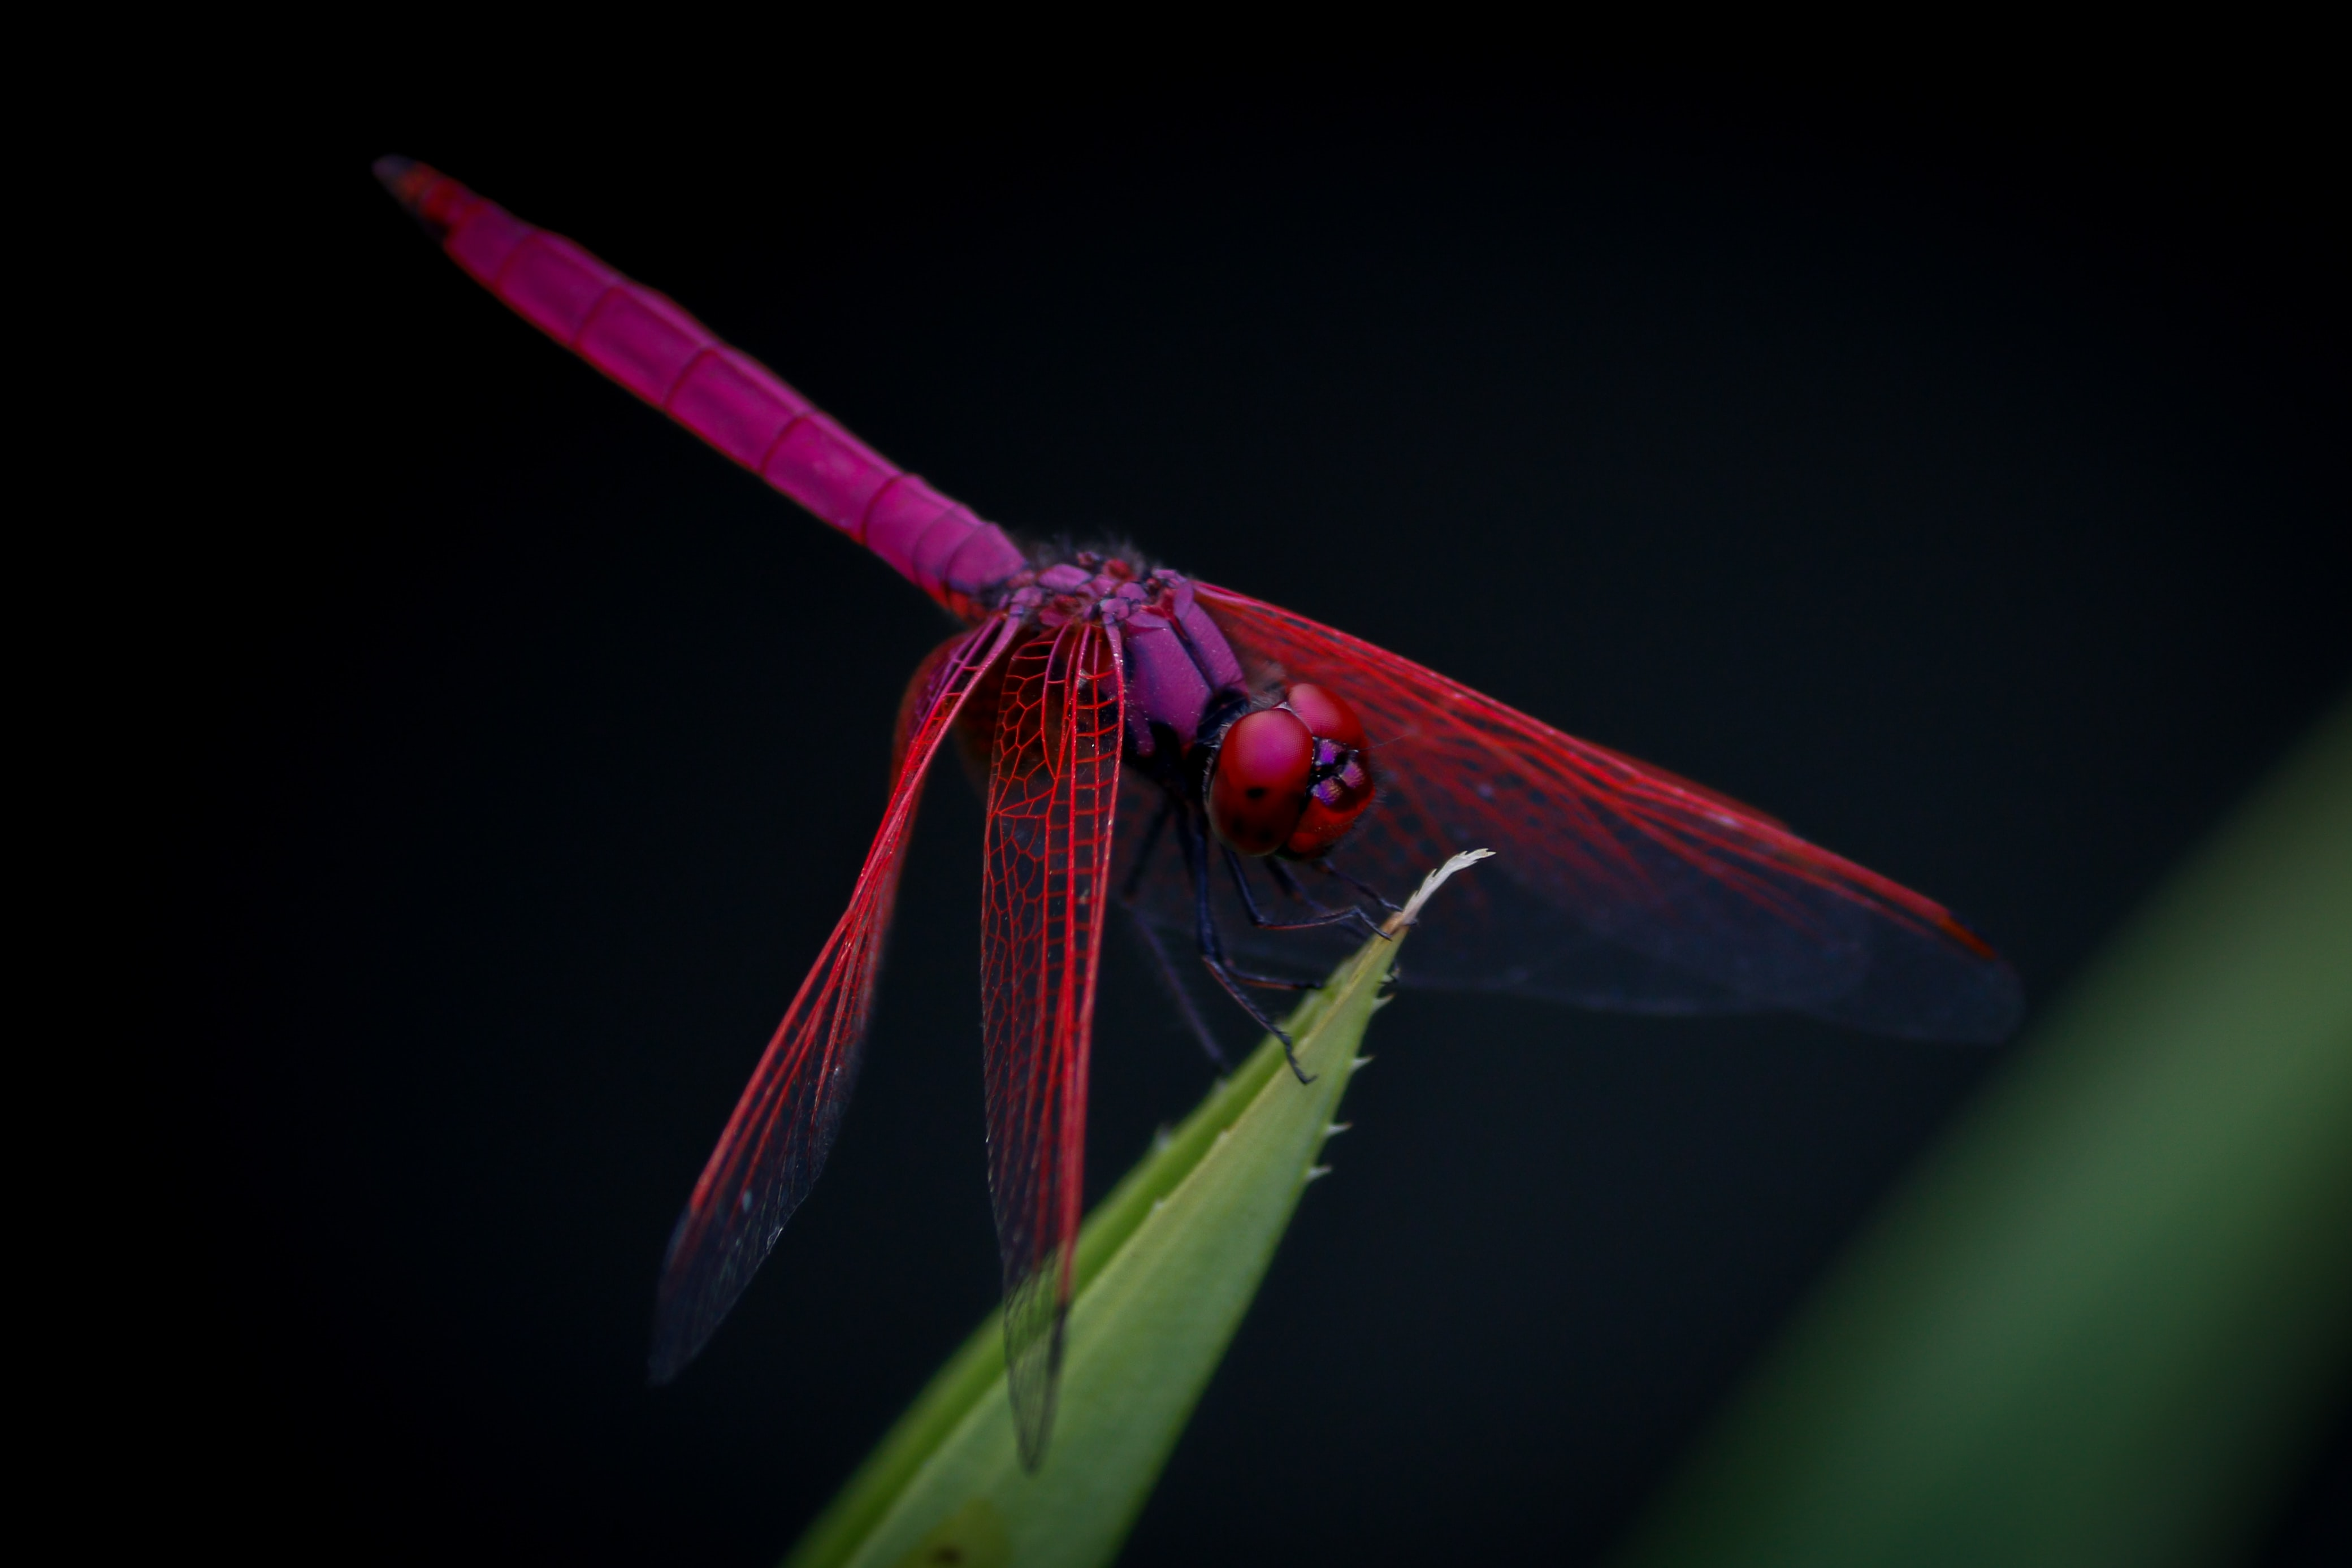 Purple and pink dragonfly landing on a leaf